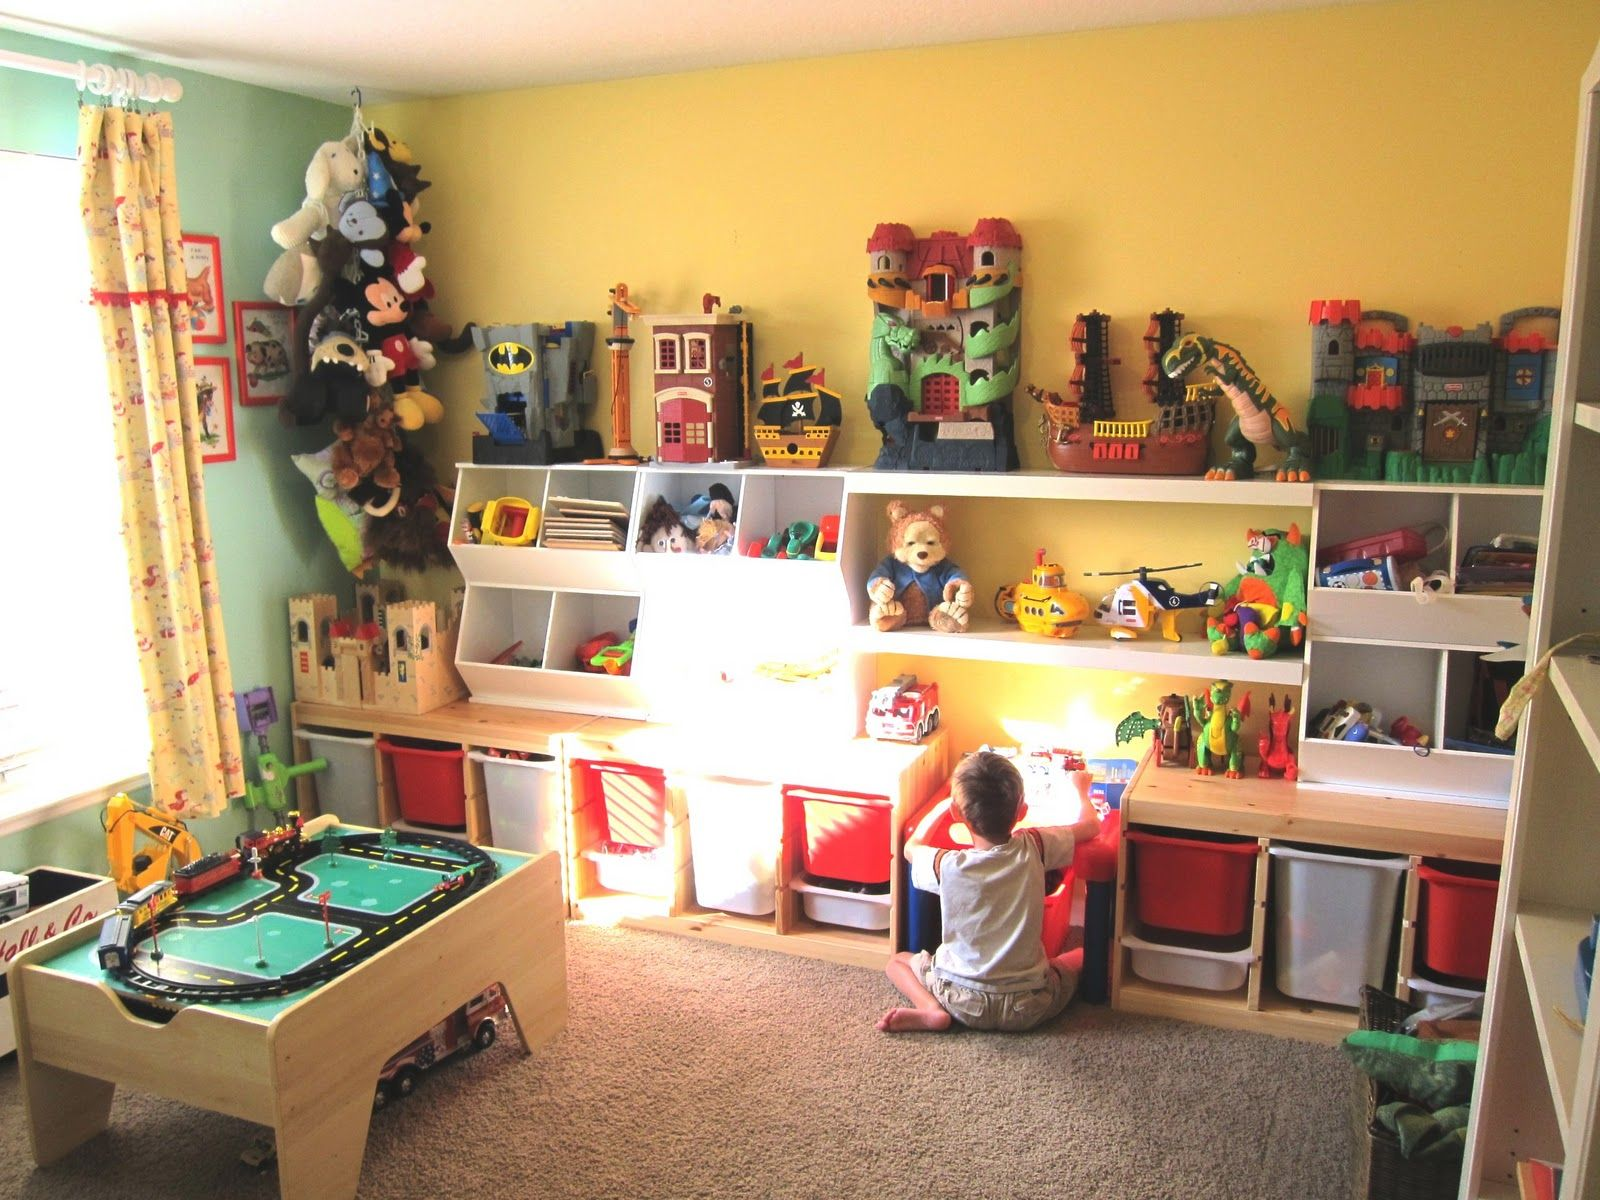 Coreymoortgat Blogspot in Child S Room Boy Happy Yellow Walls. 18 Inch Doll Living Room Furniture. 1000 Images Doll House Furniture On Pterest American. American Girl Sized 18 Inch Doll Furniture 4 Piece Living Room